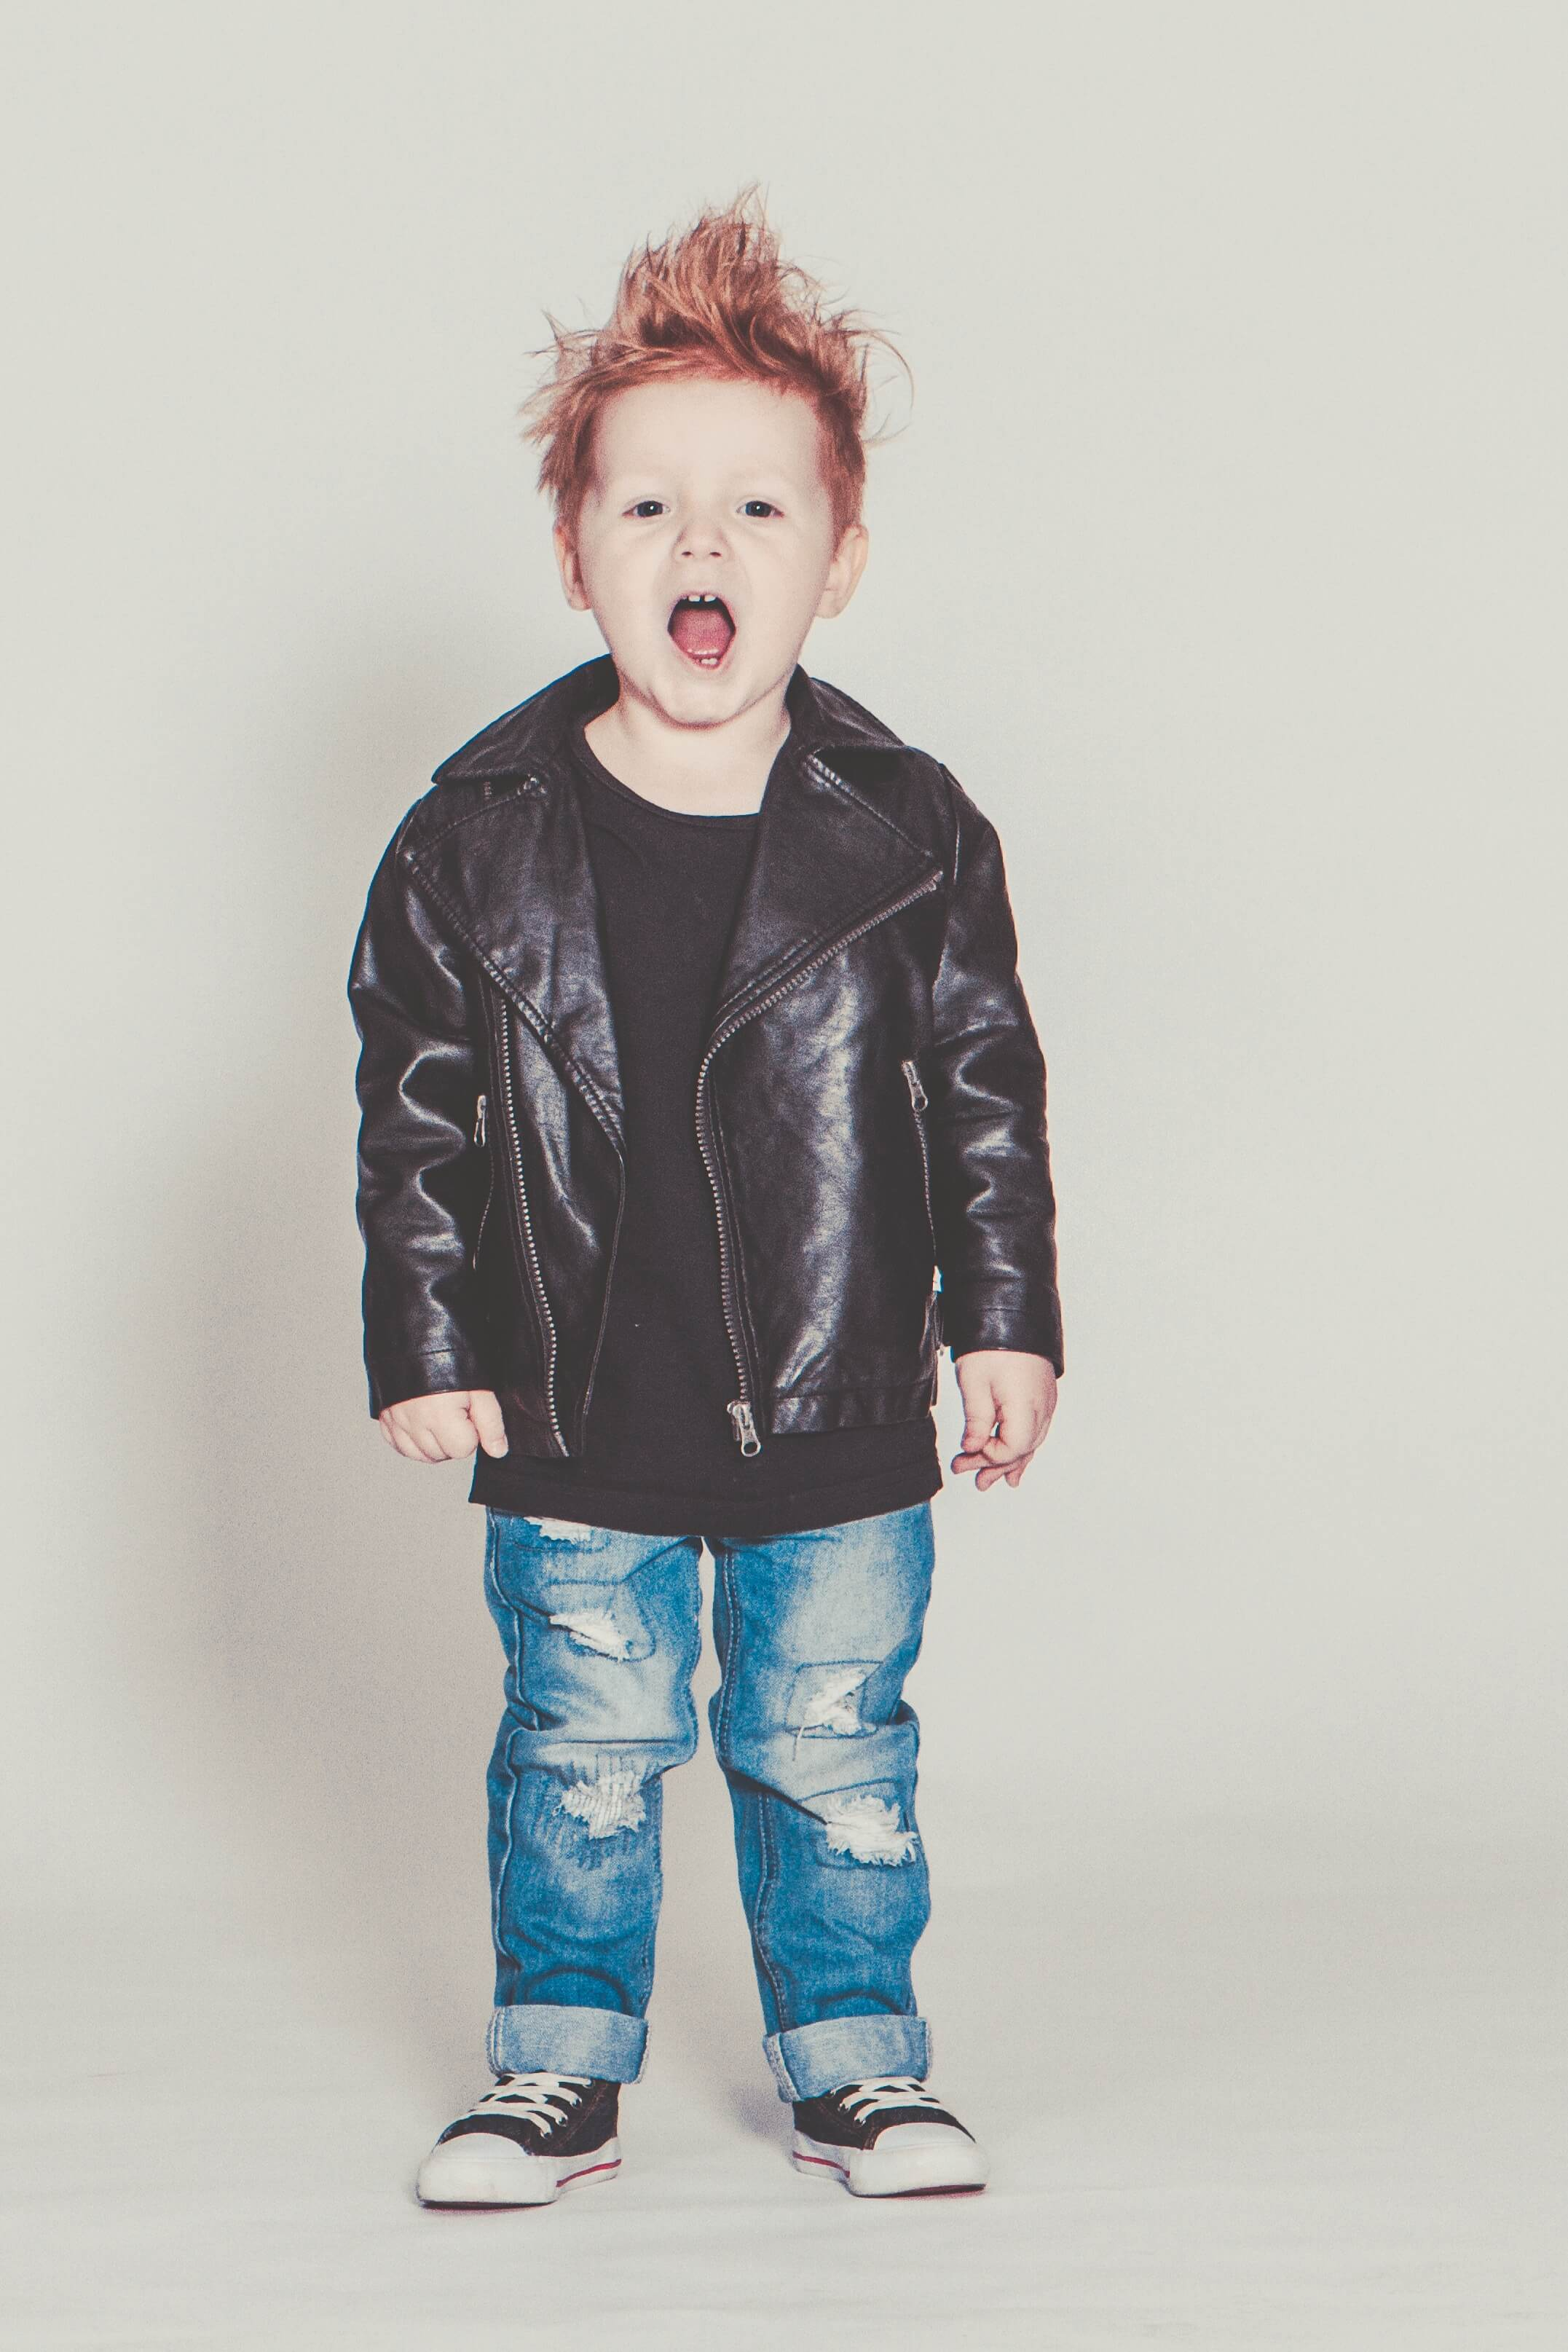 3 year old boy with red hair wearing holey jeans, tennis shoes, a black t-shirt and a perfecto jacket